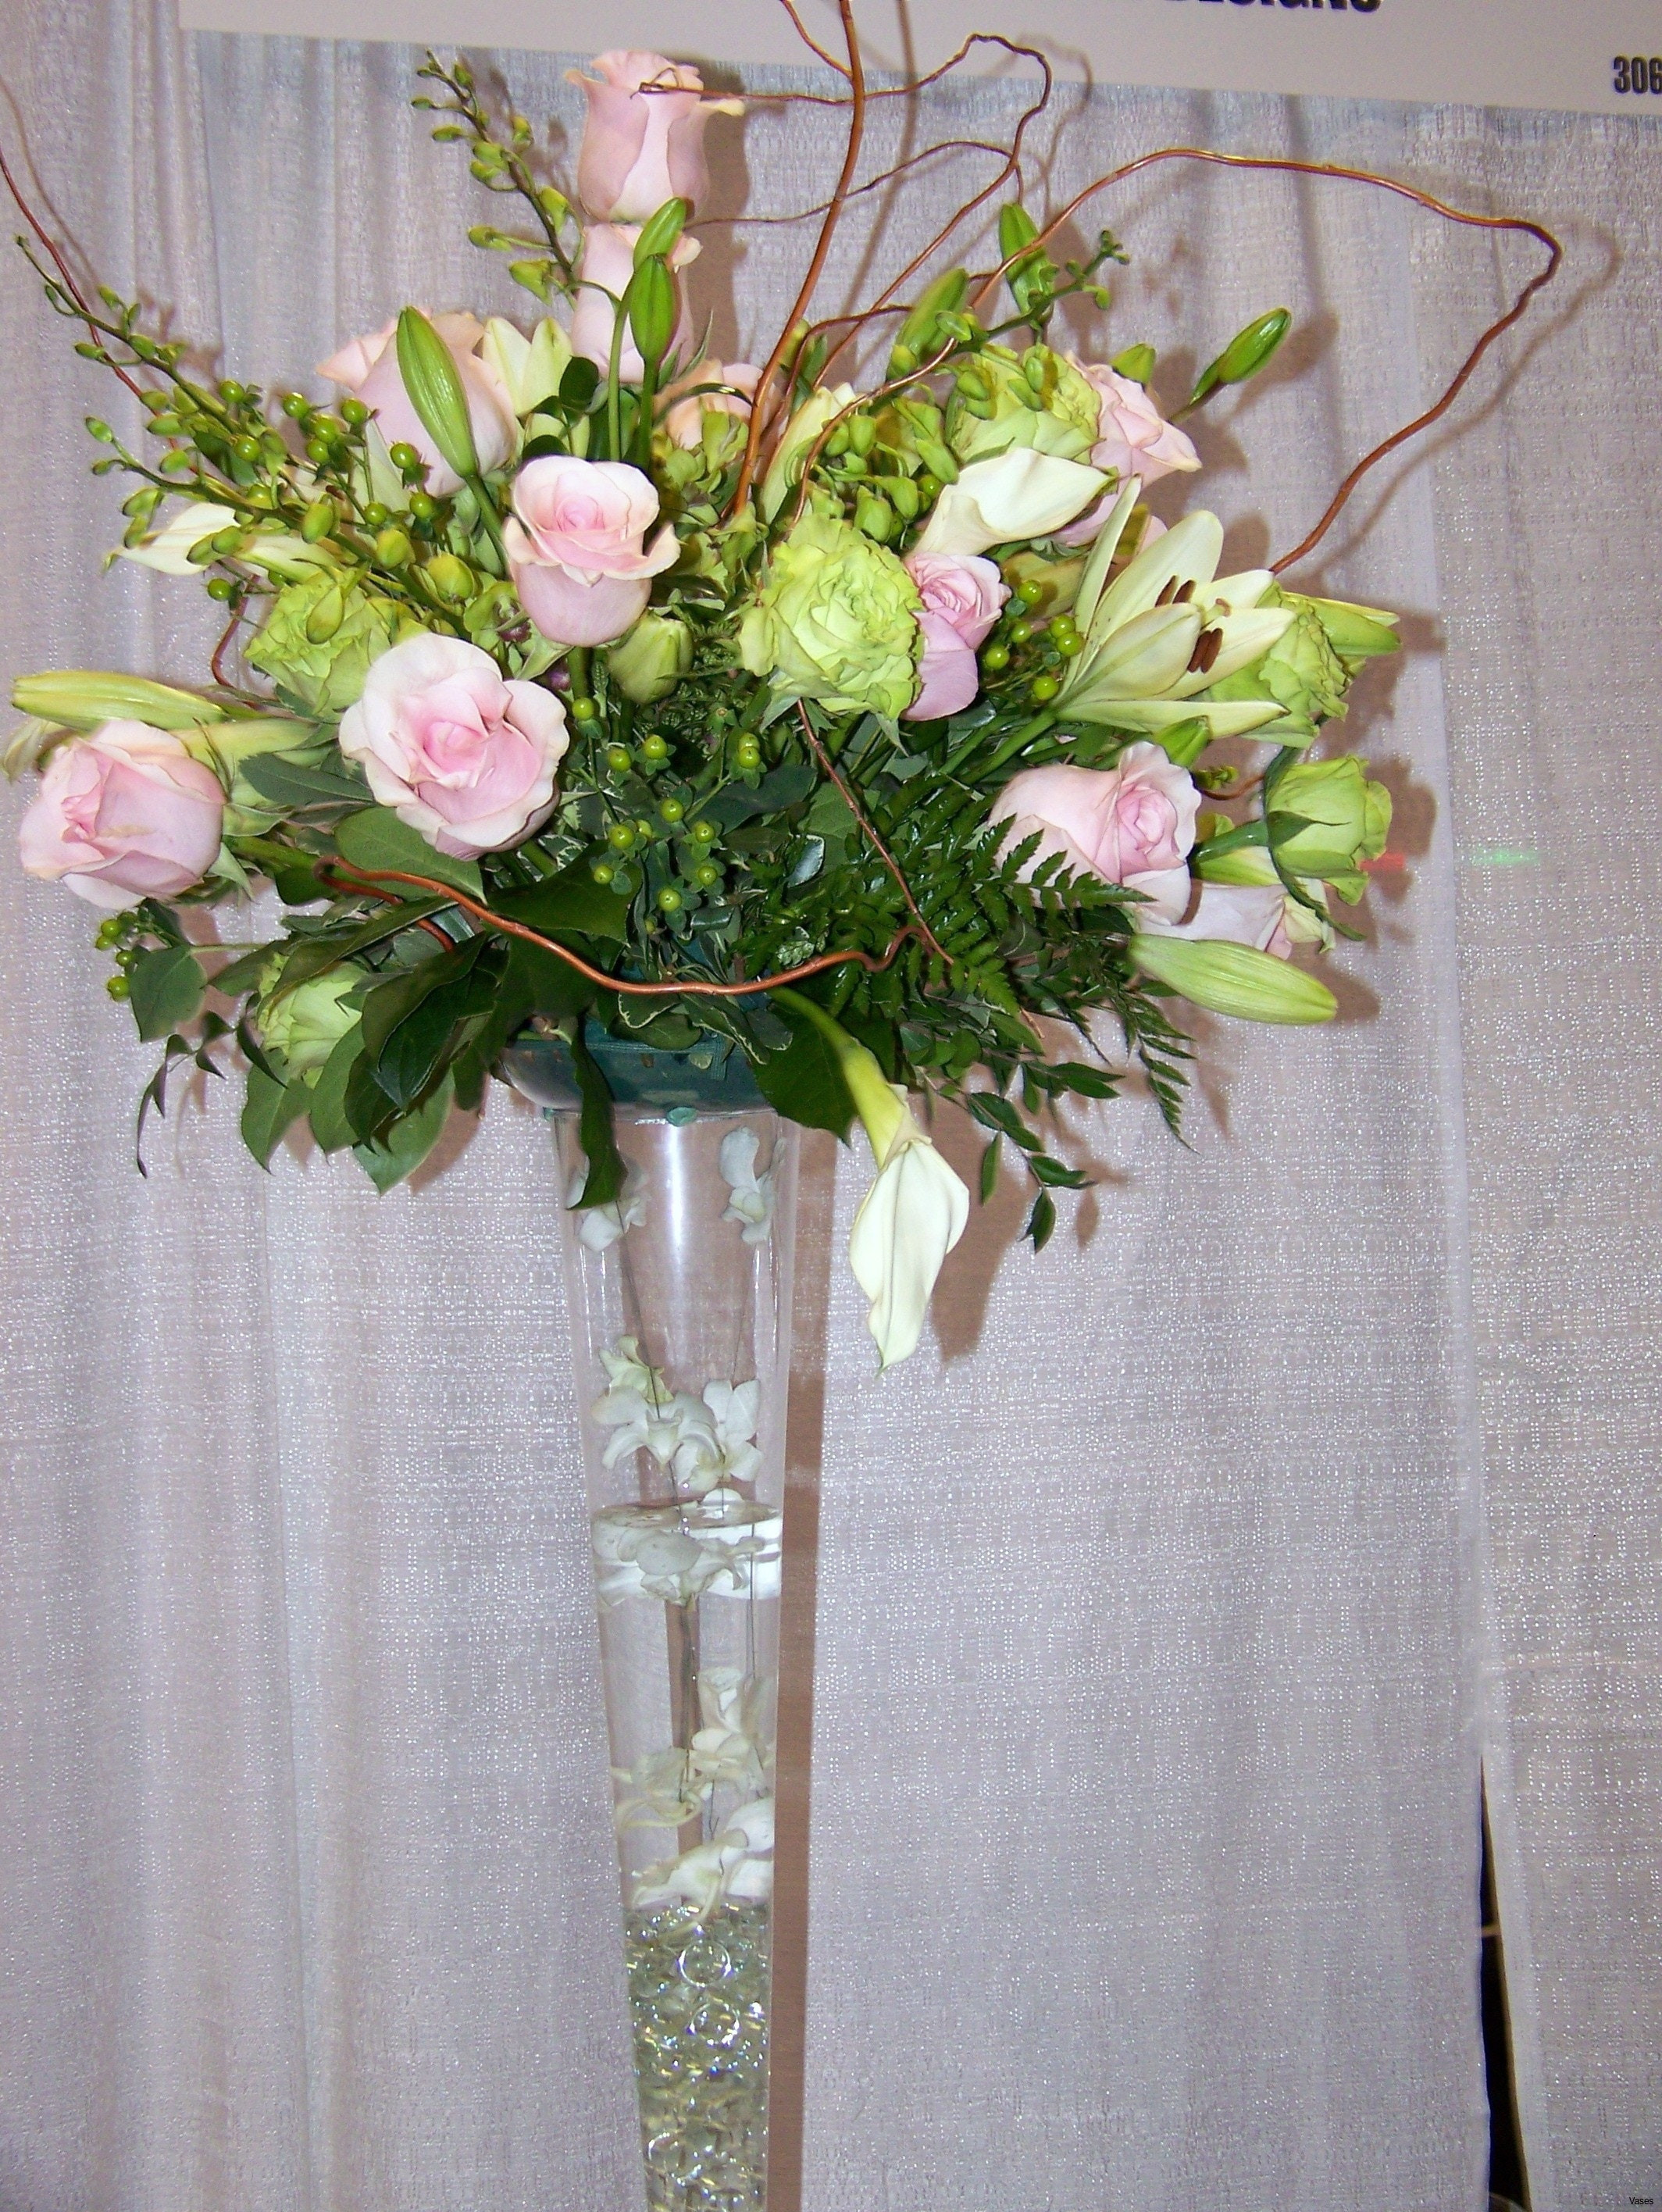 Flower Arrangements A Bud Elegant Wedding Decoration Ideas Bud Amazing H Vases Ideas for Floral